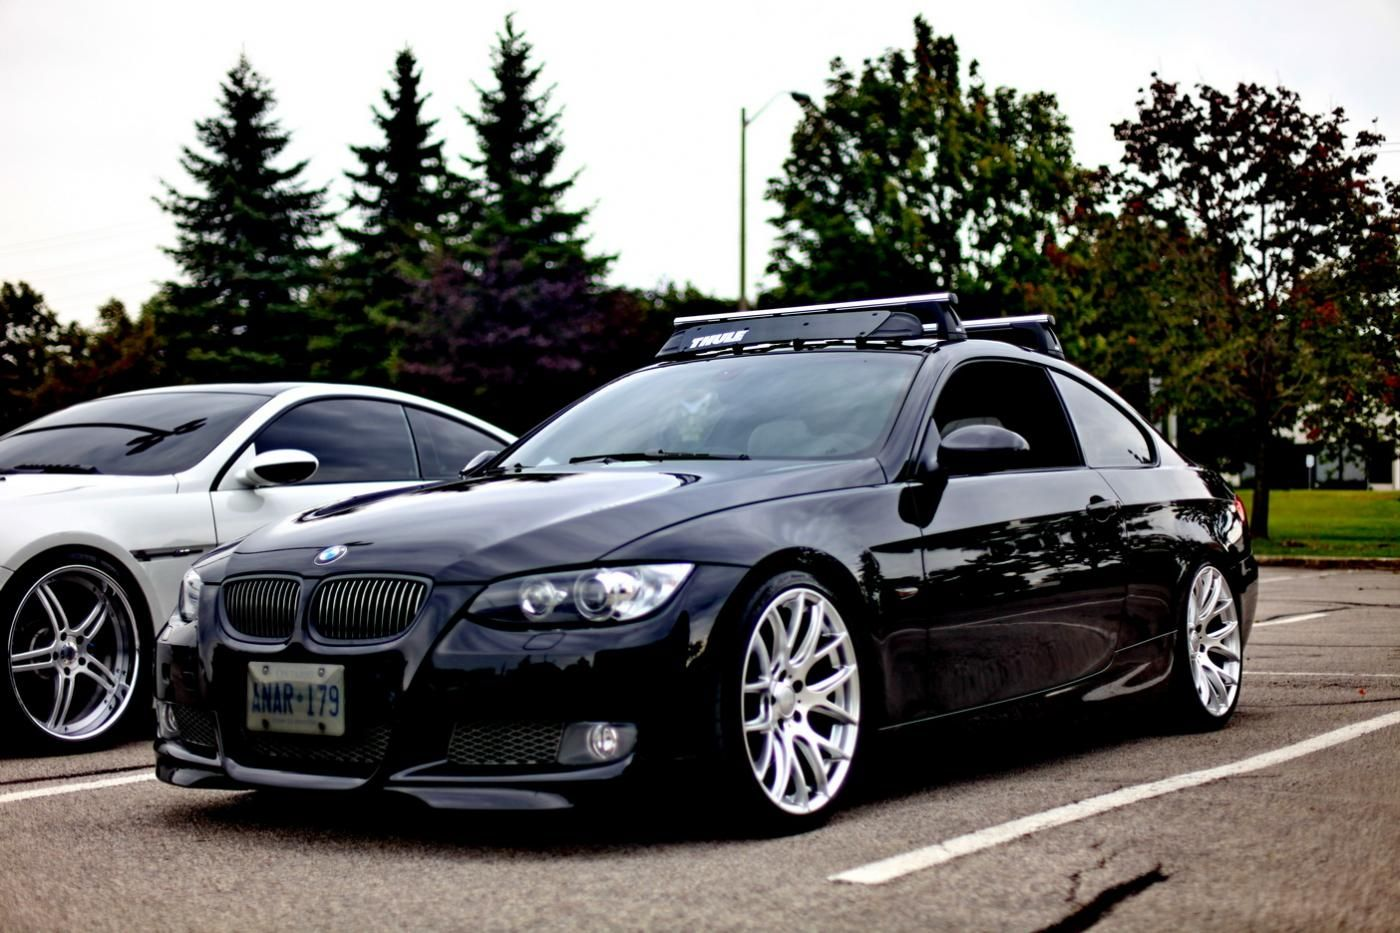 BMW roof rack | Cars & bikes | Pinterest | Roof rack, BMW ...